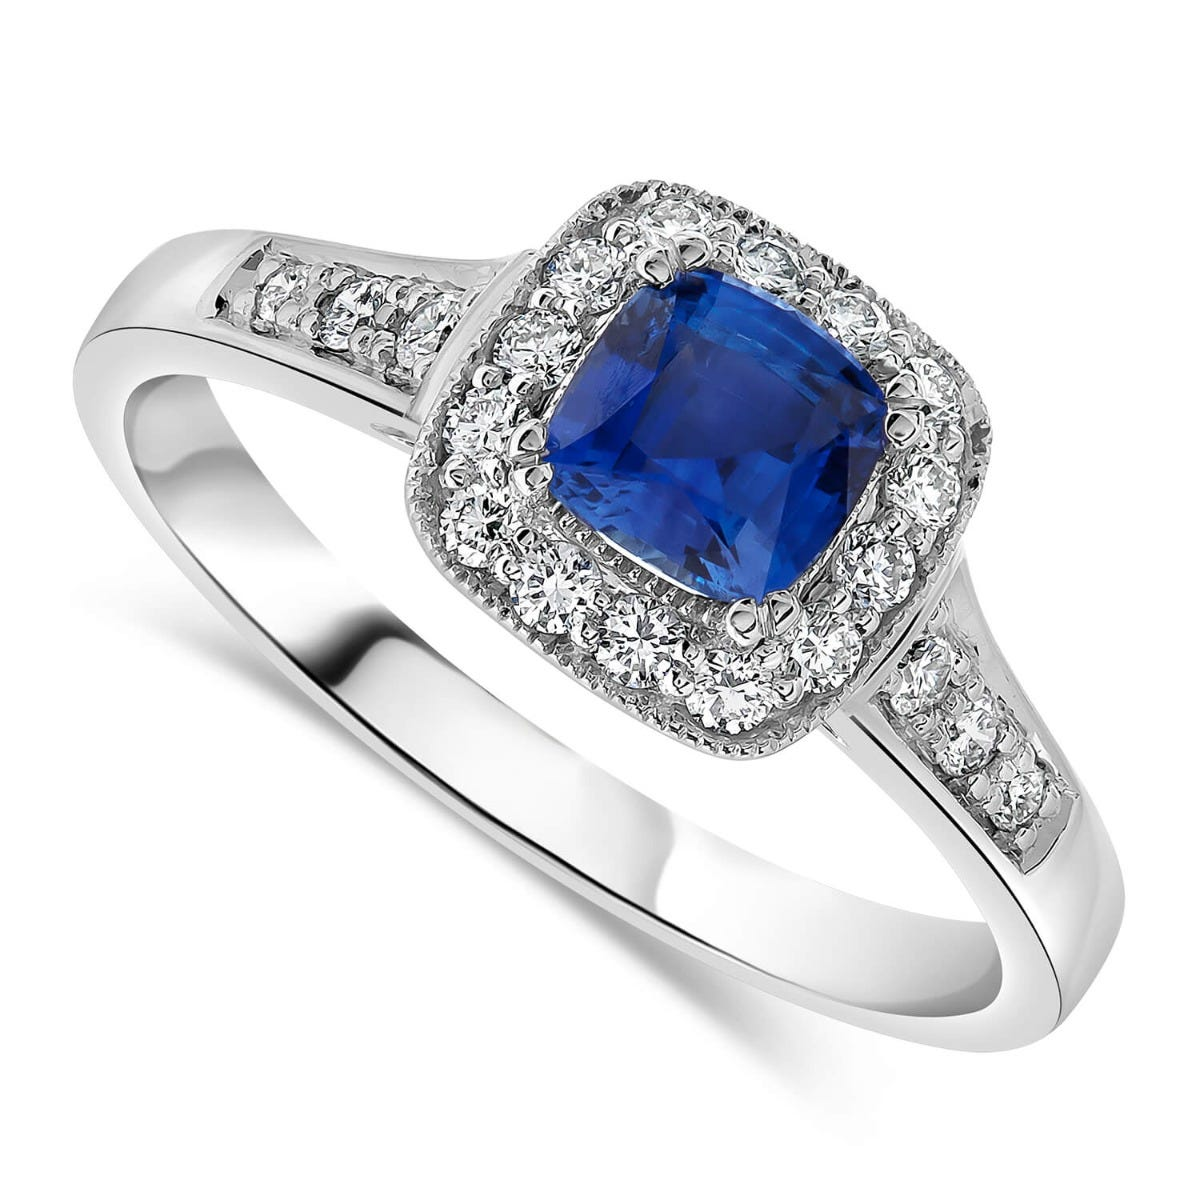 18ct white gold sapphire and 0.25 carat diamond ring